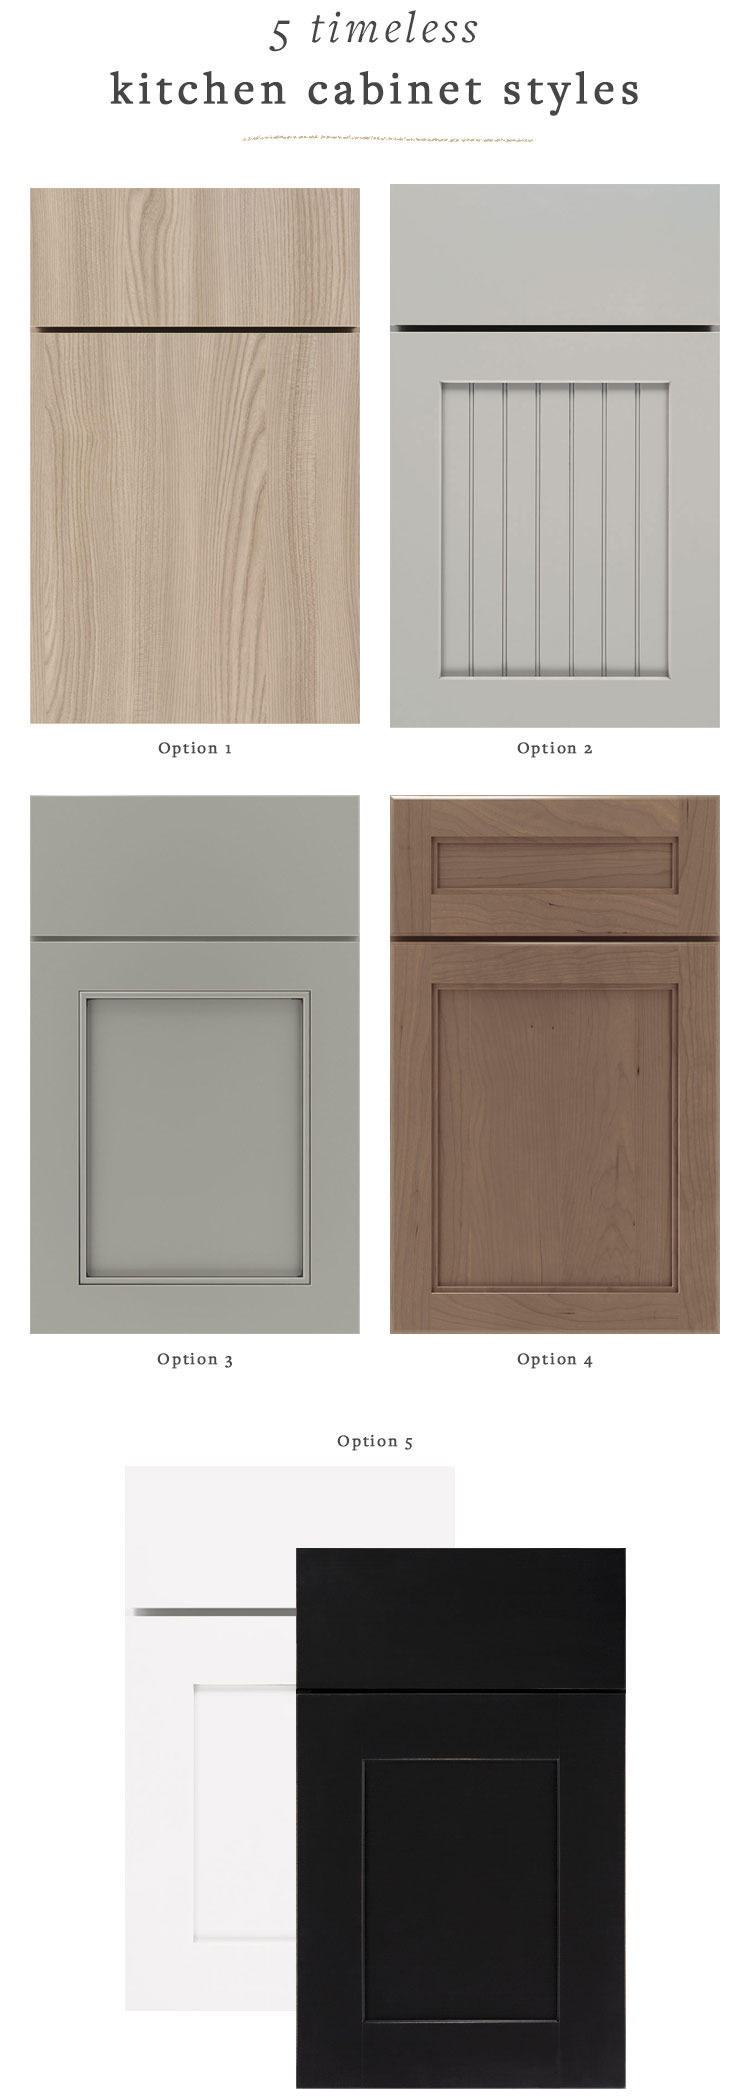 jojotastic 5 Timeless Kitchen Cabinet Door Styles 1